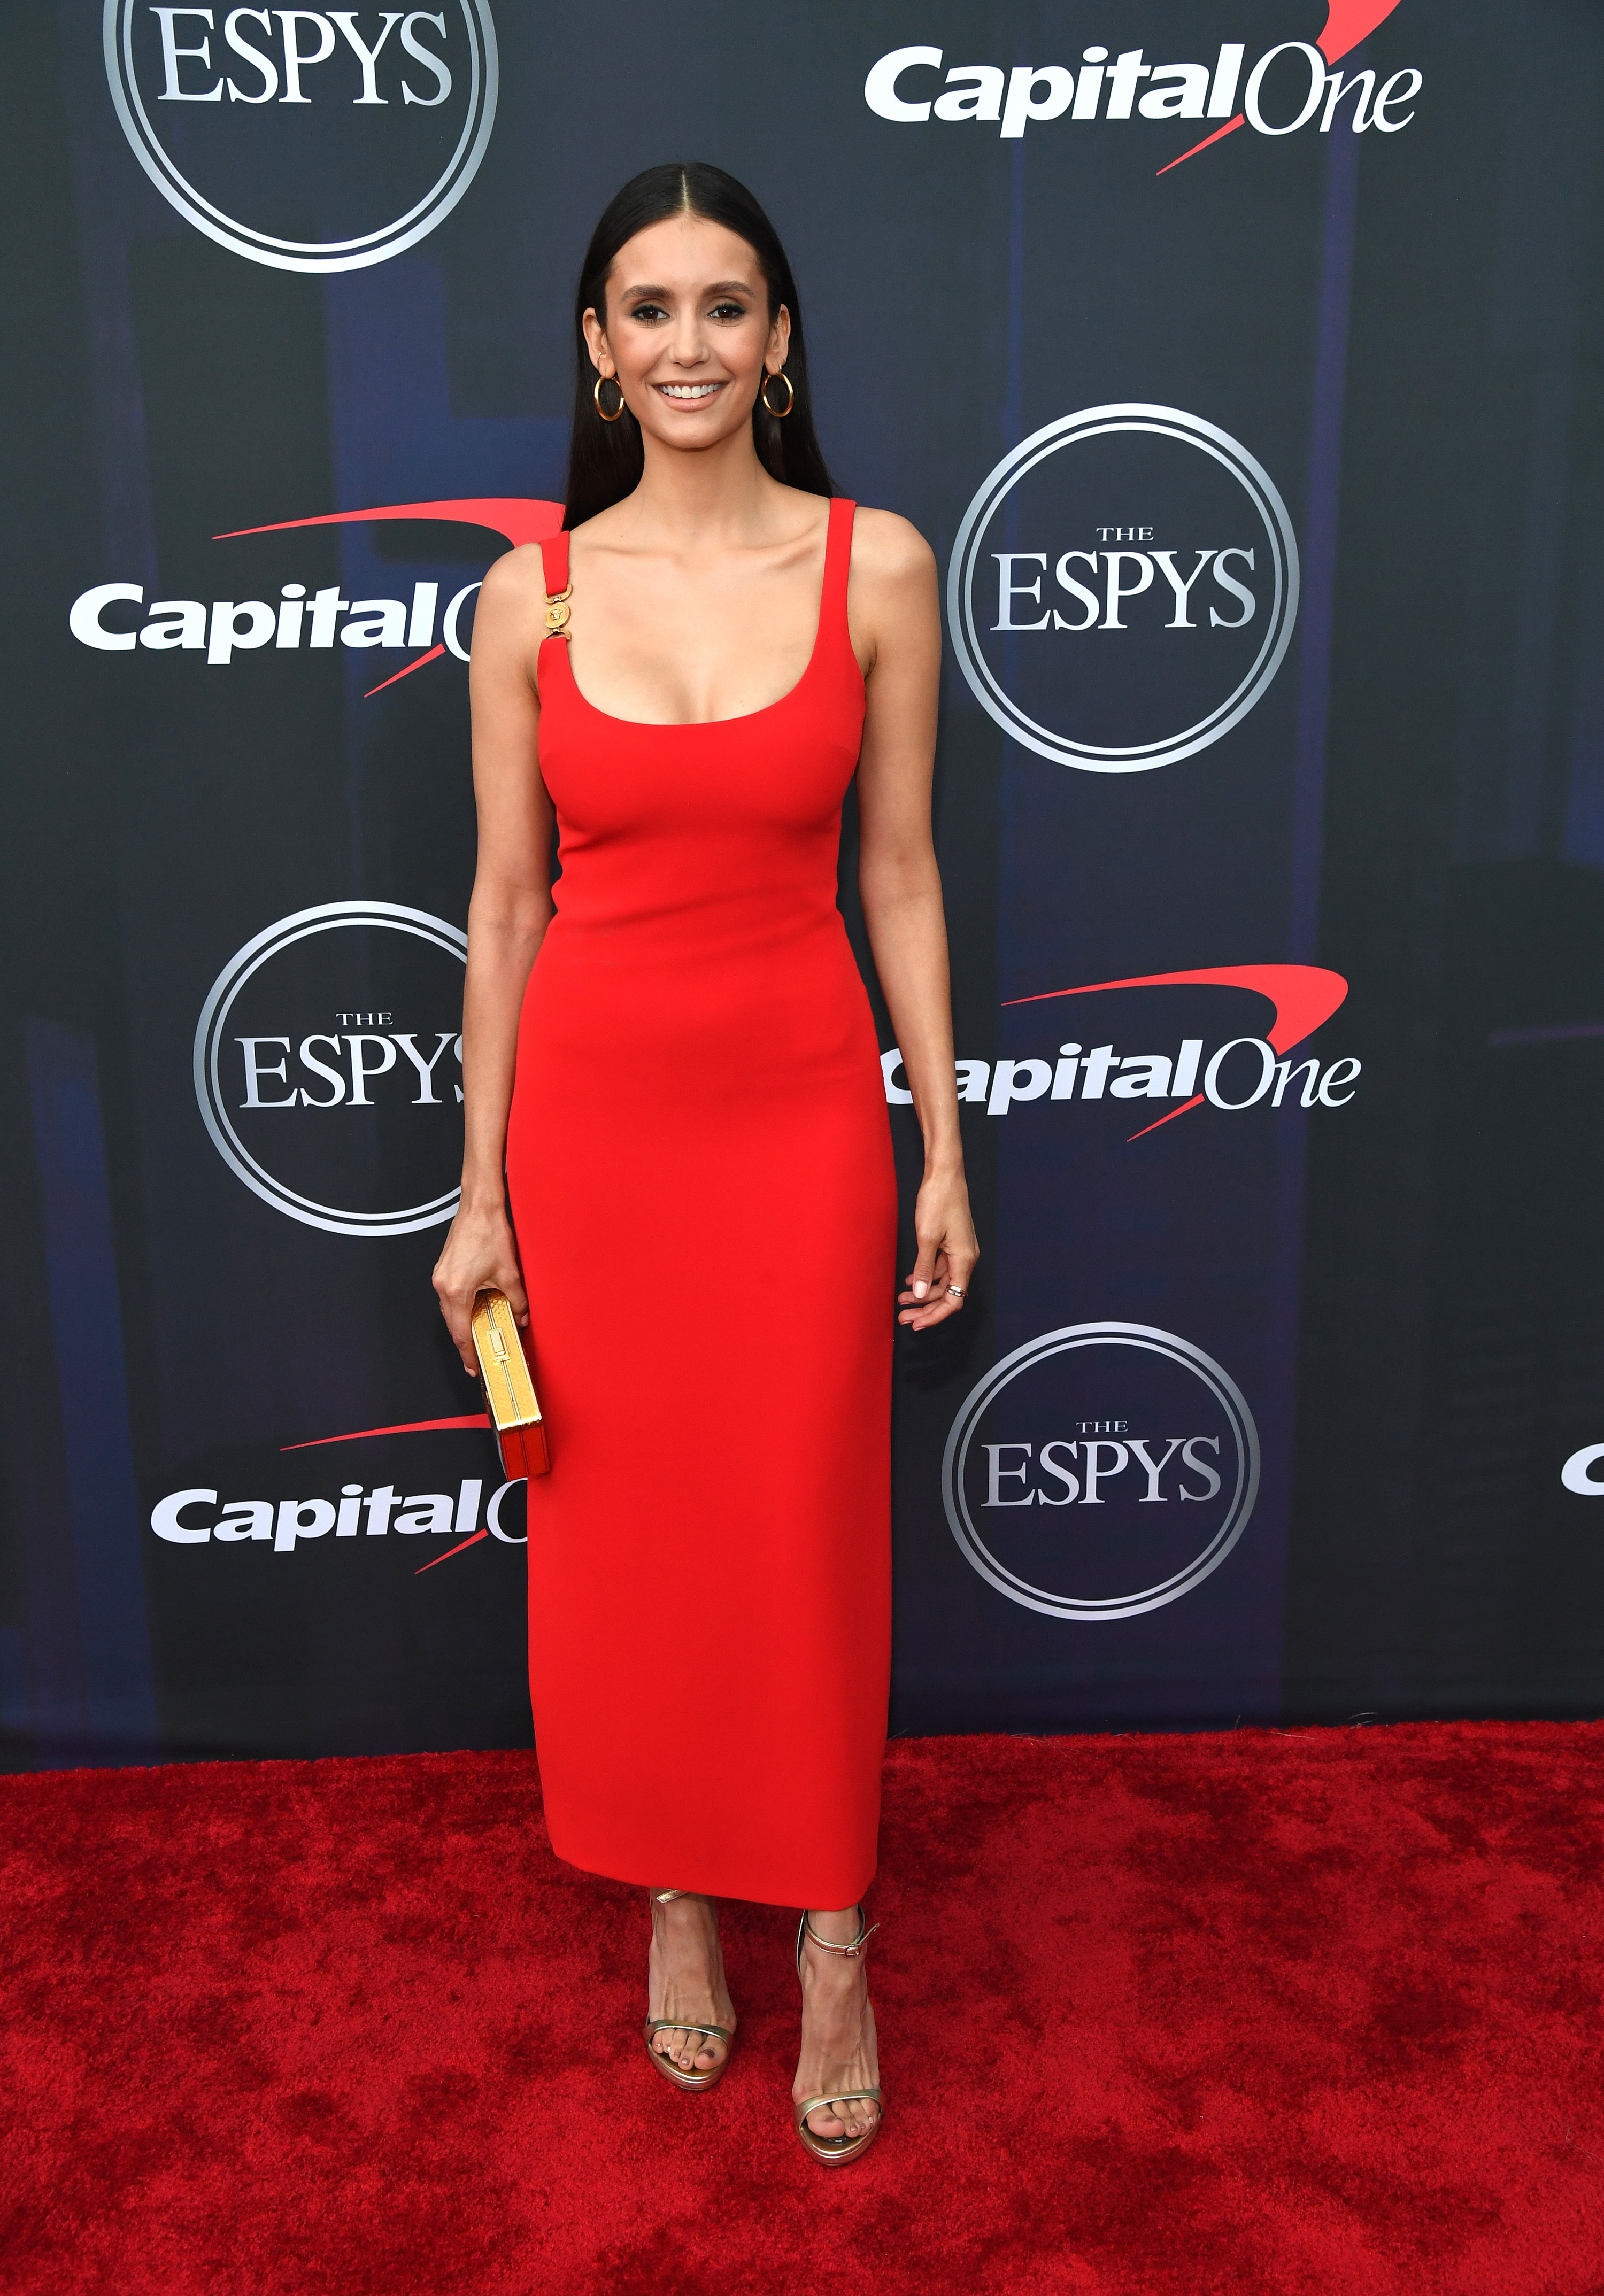 Nina wore a simple ankle-length gown with a clasp detail on one shoulder